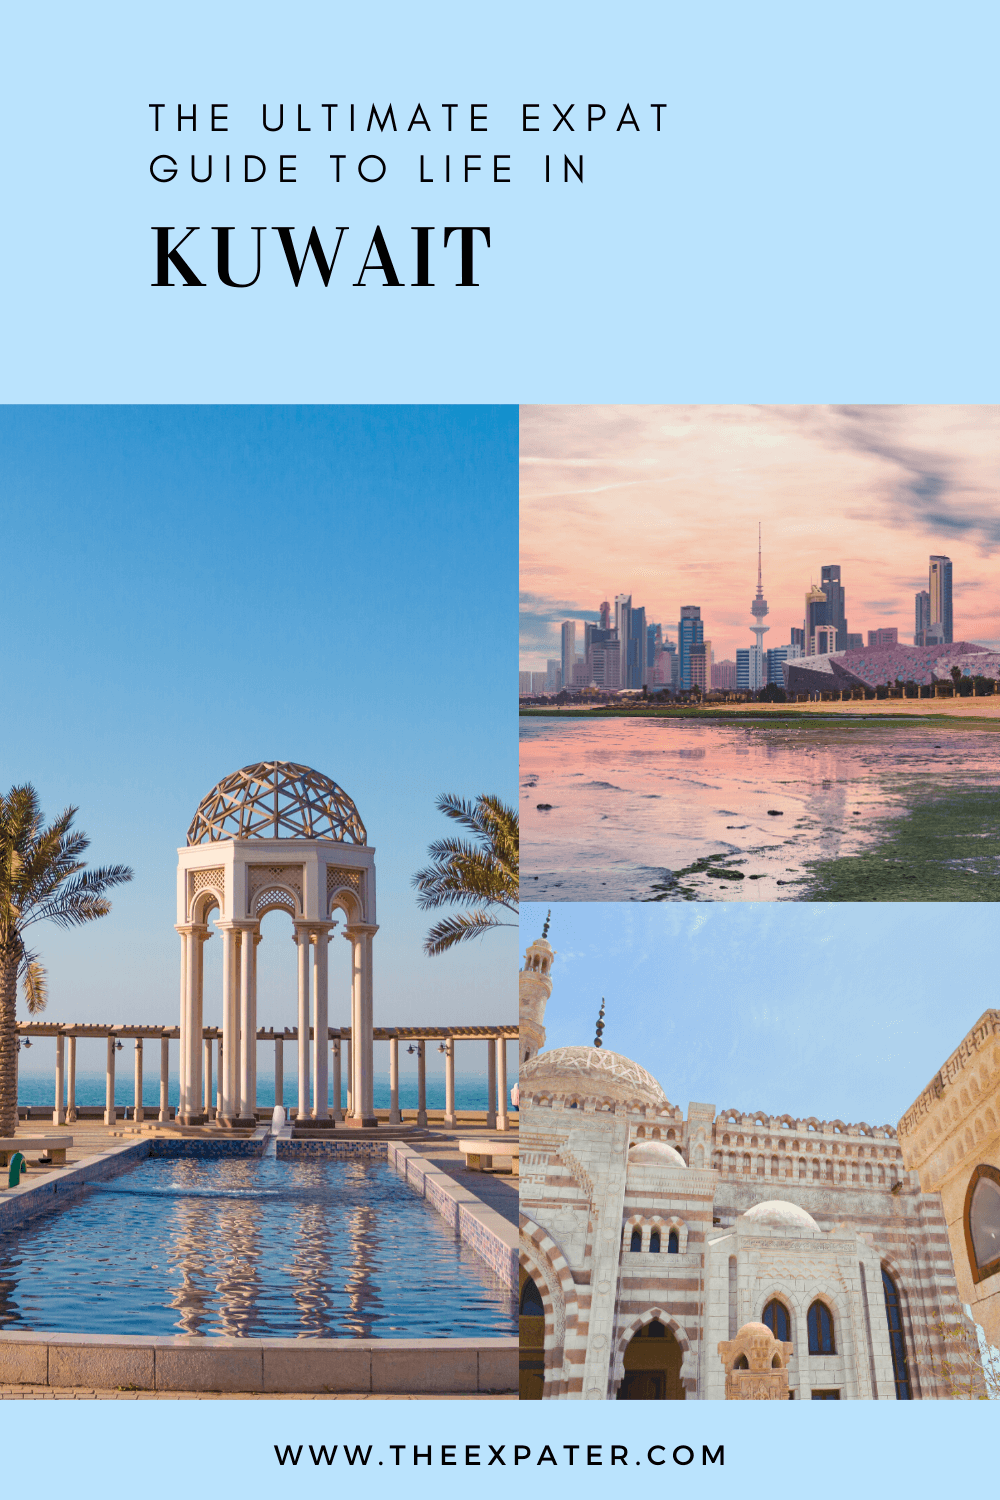 a guide to life in kuwait